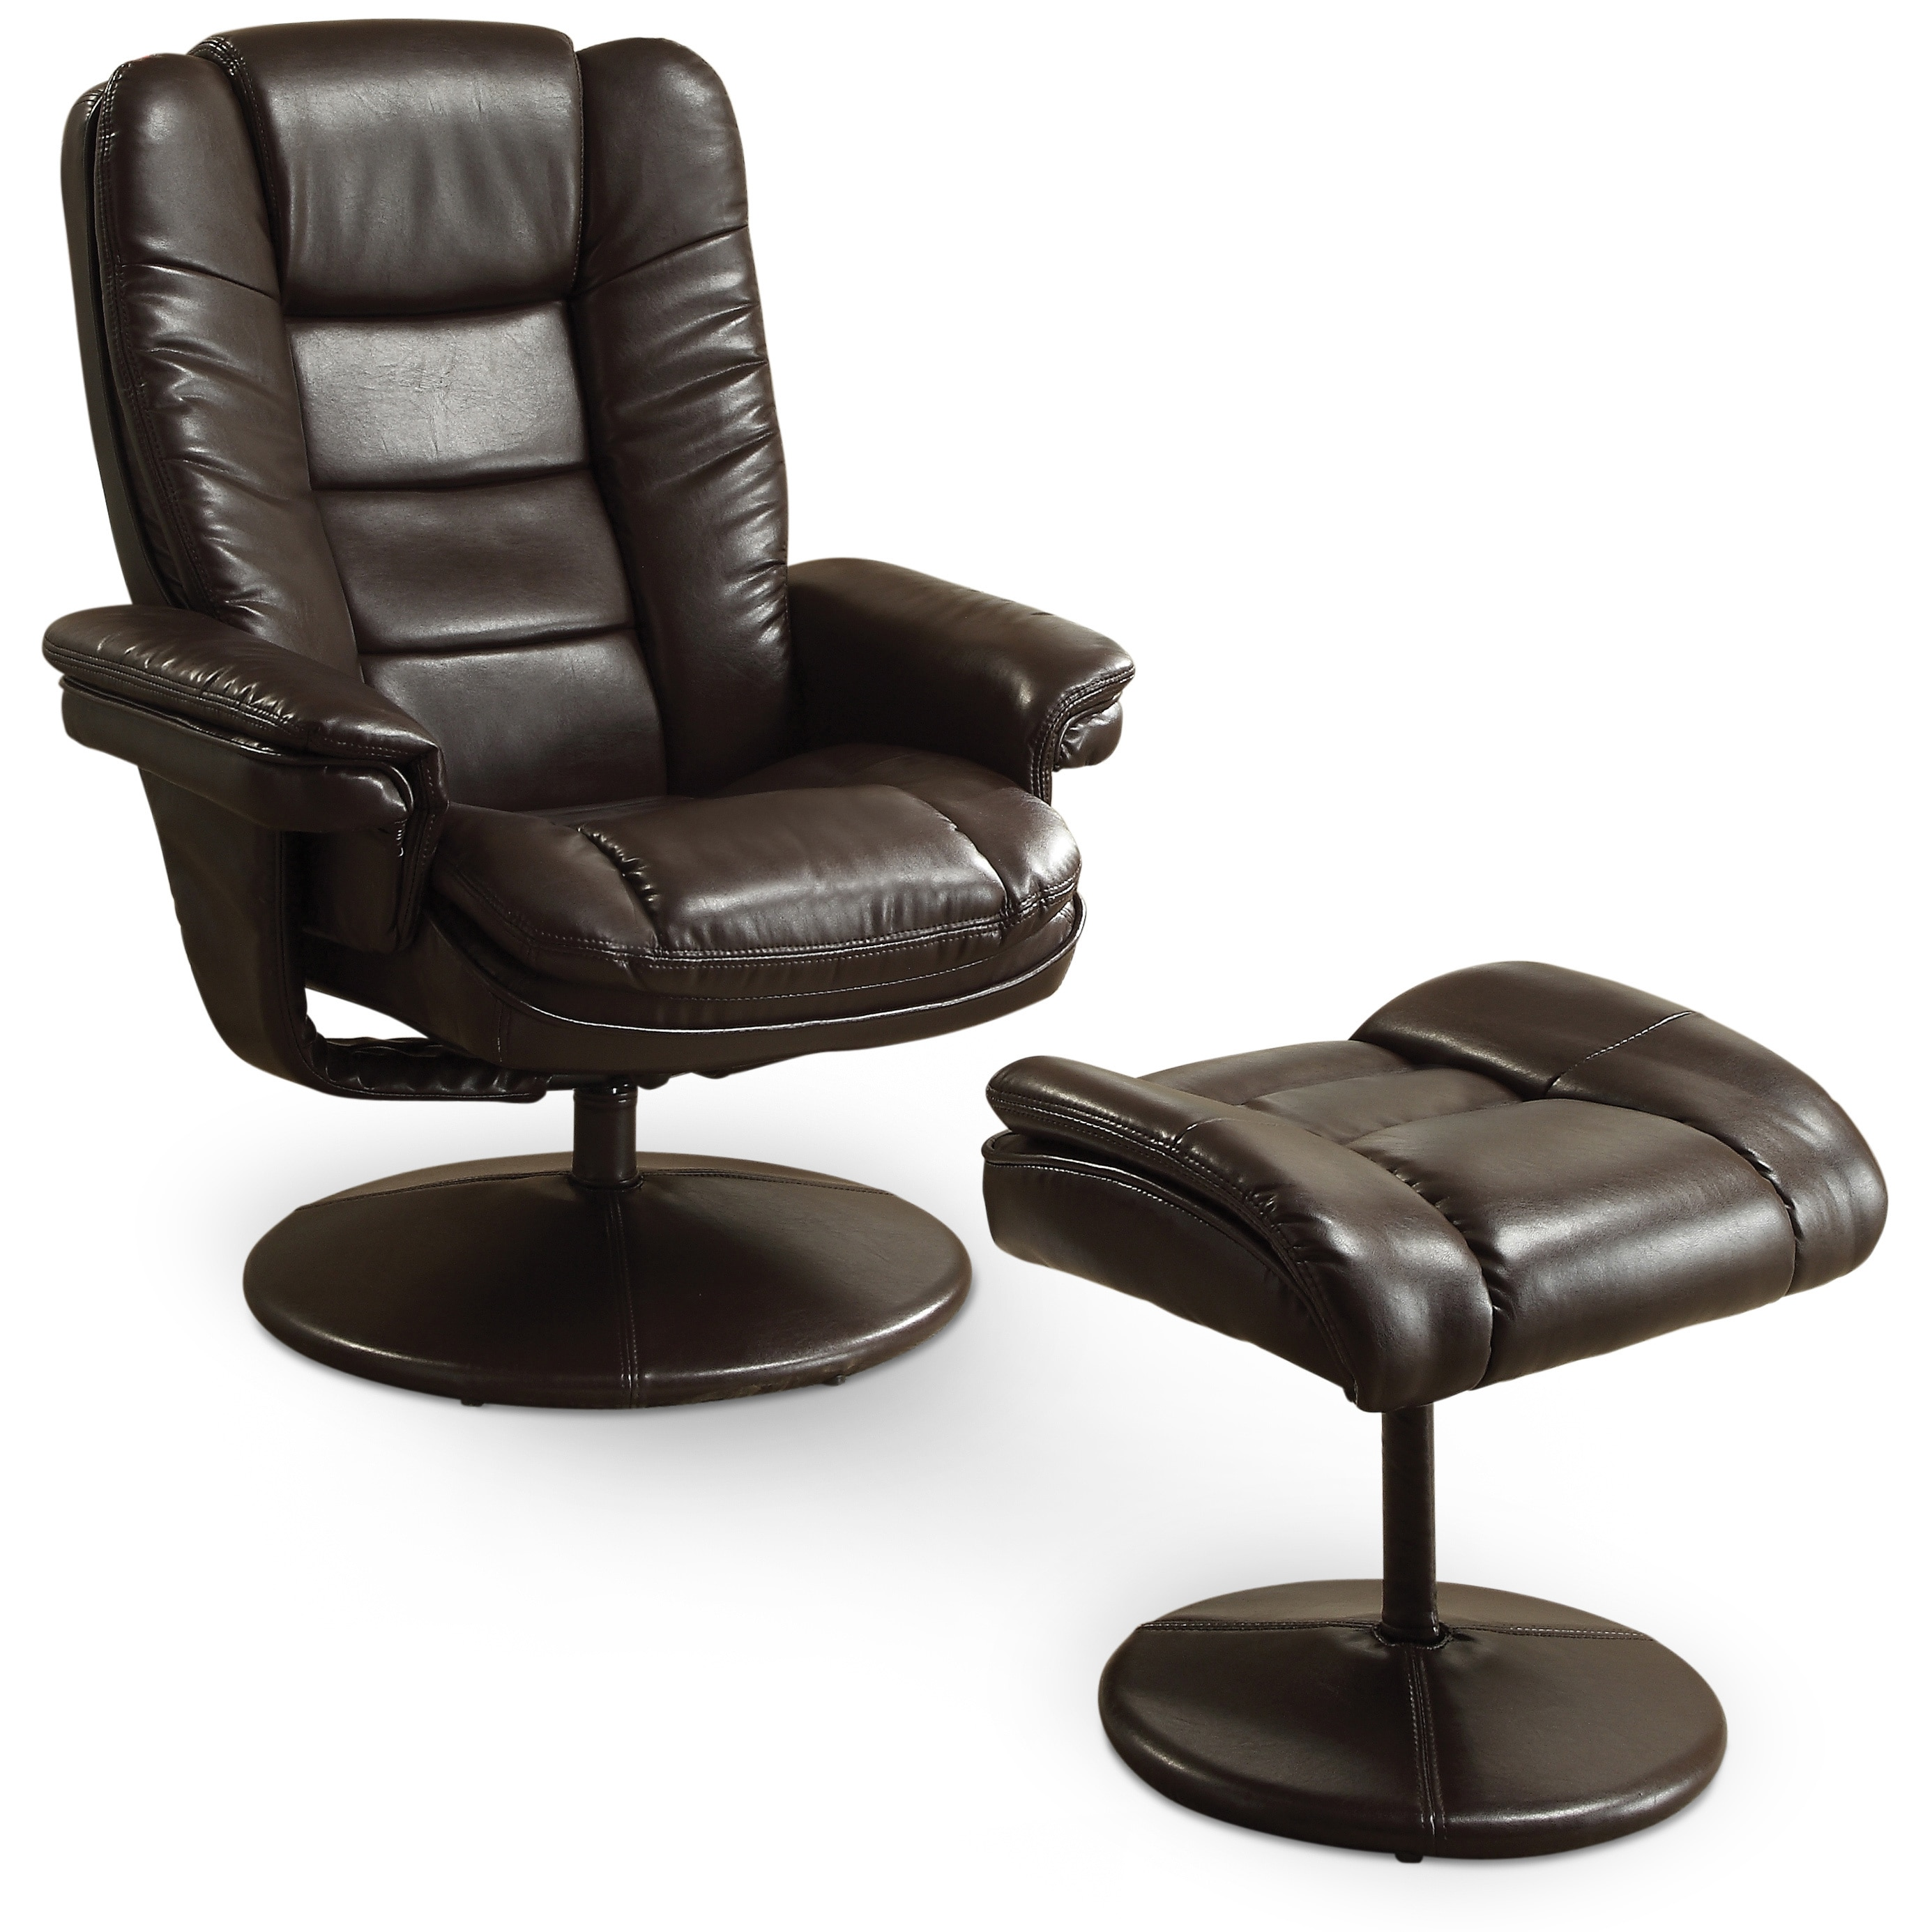 Leather Recliner Chair With Ottoman Art Van Walsh Reclining Chair Ottoman